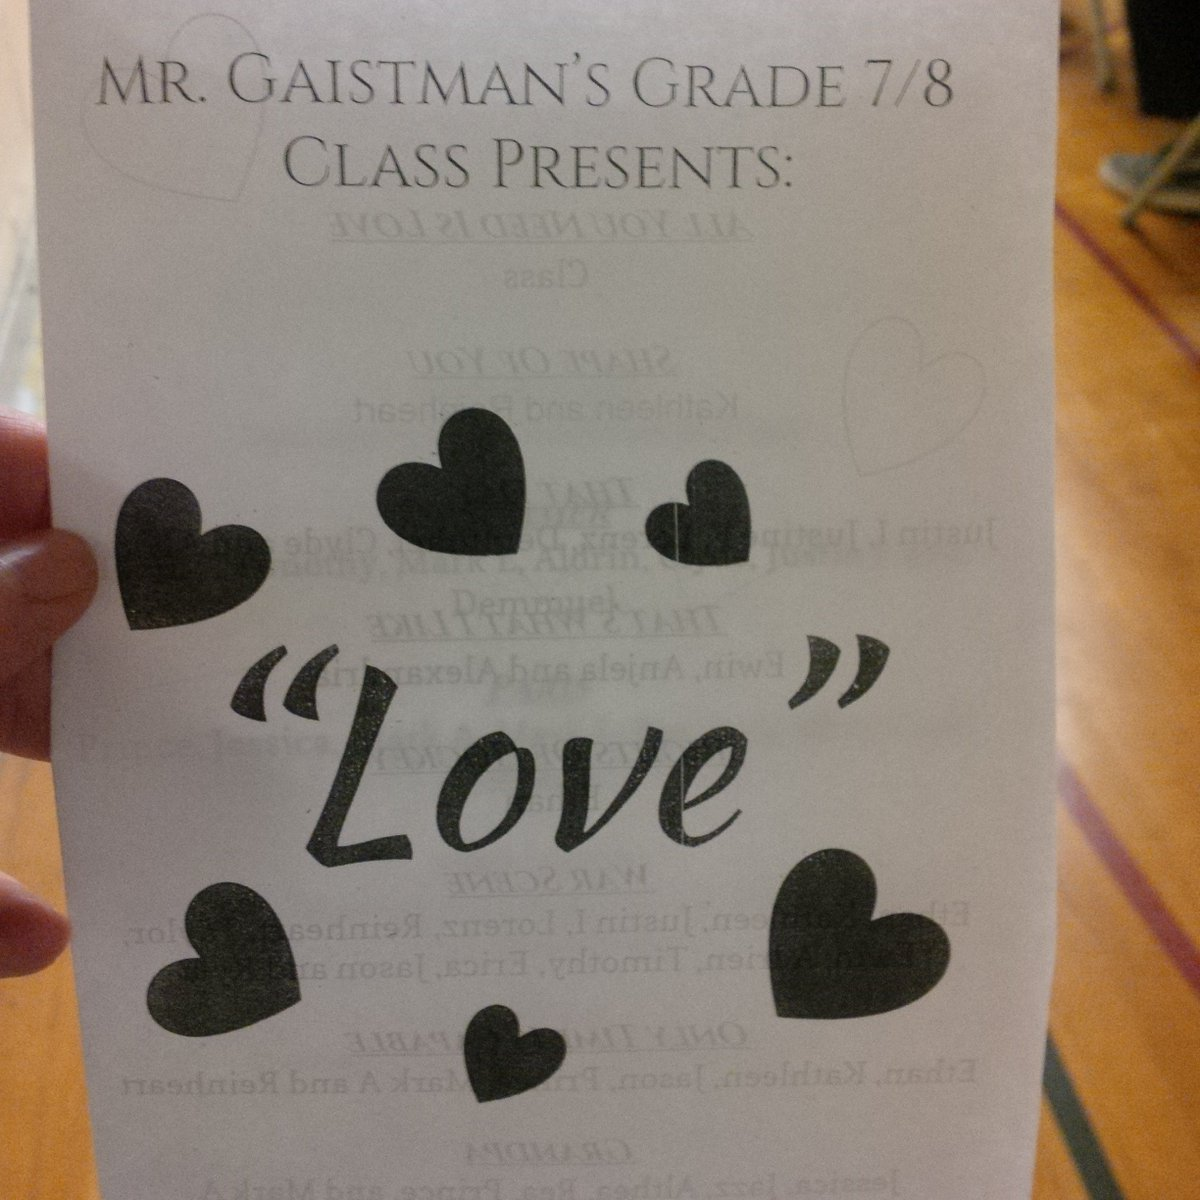 The Grade 7 8 Production Tdsb